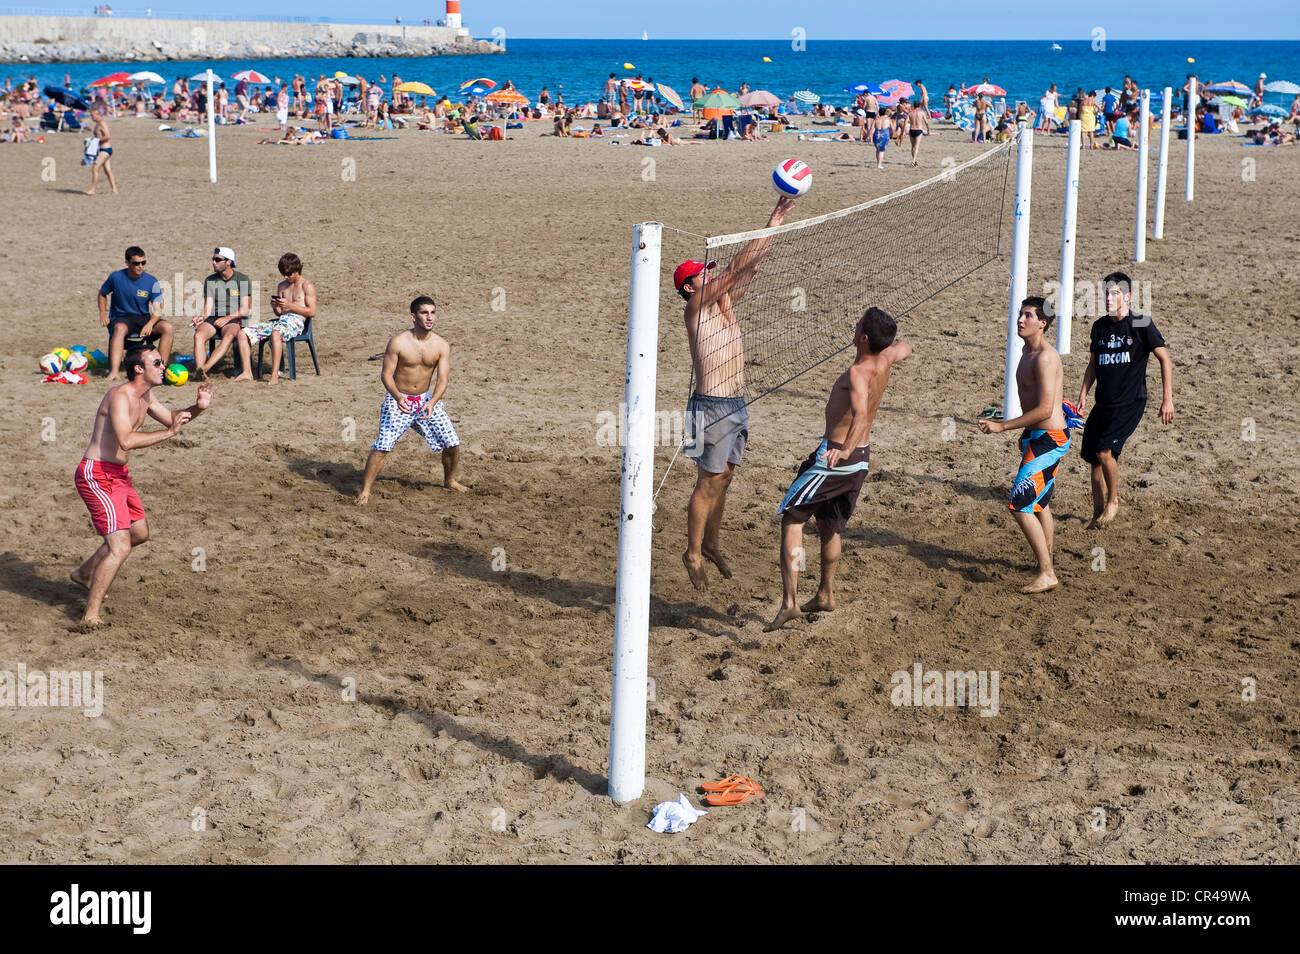 France, Aude, Corbieres, Port la Nouvelle, match of beach volley - Stock Image